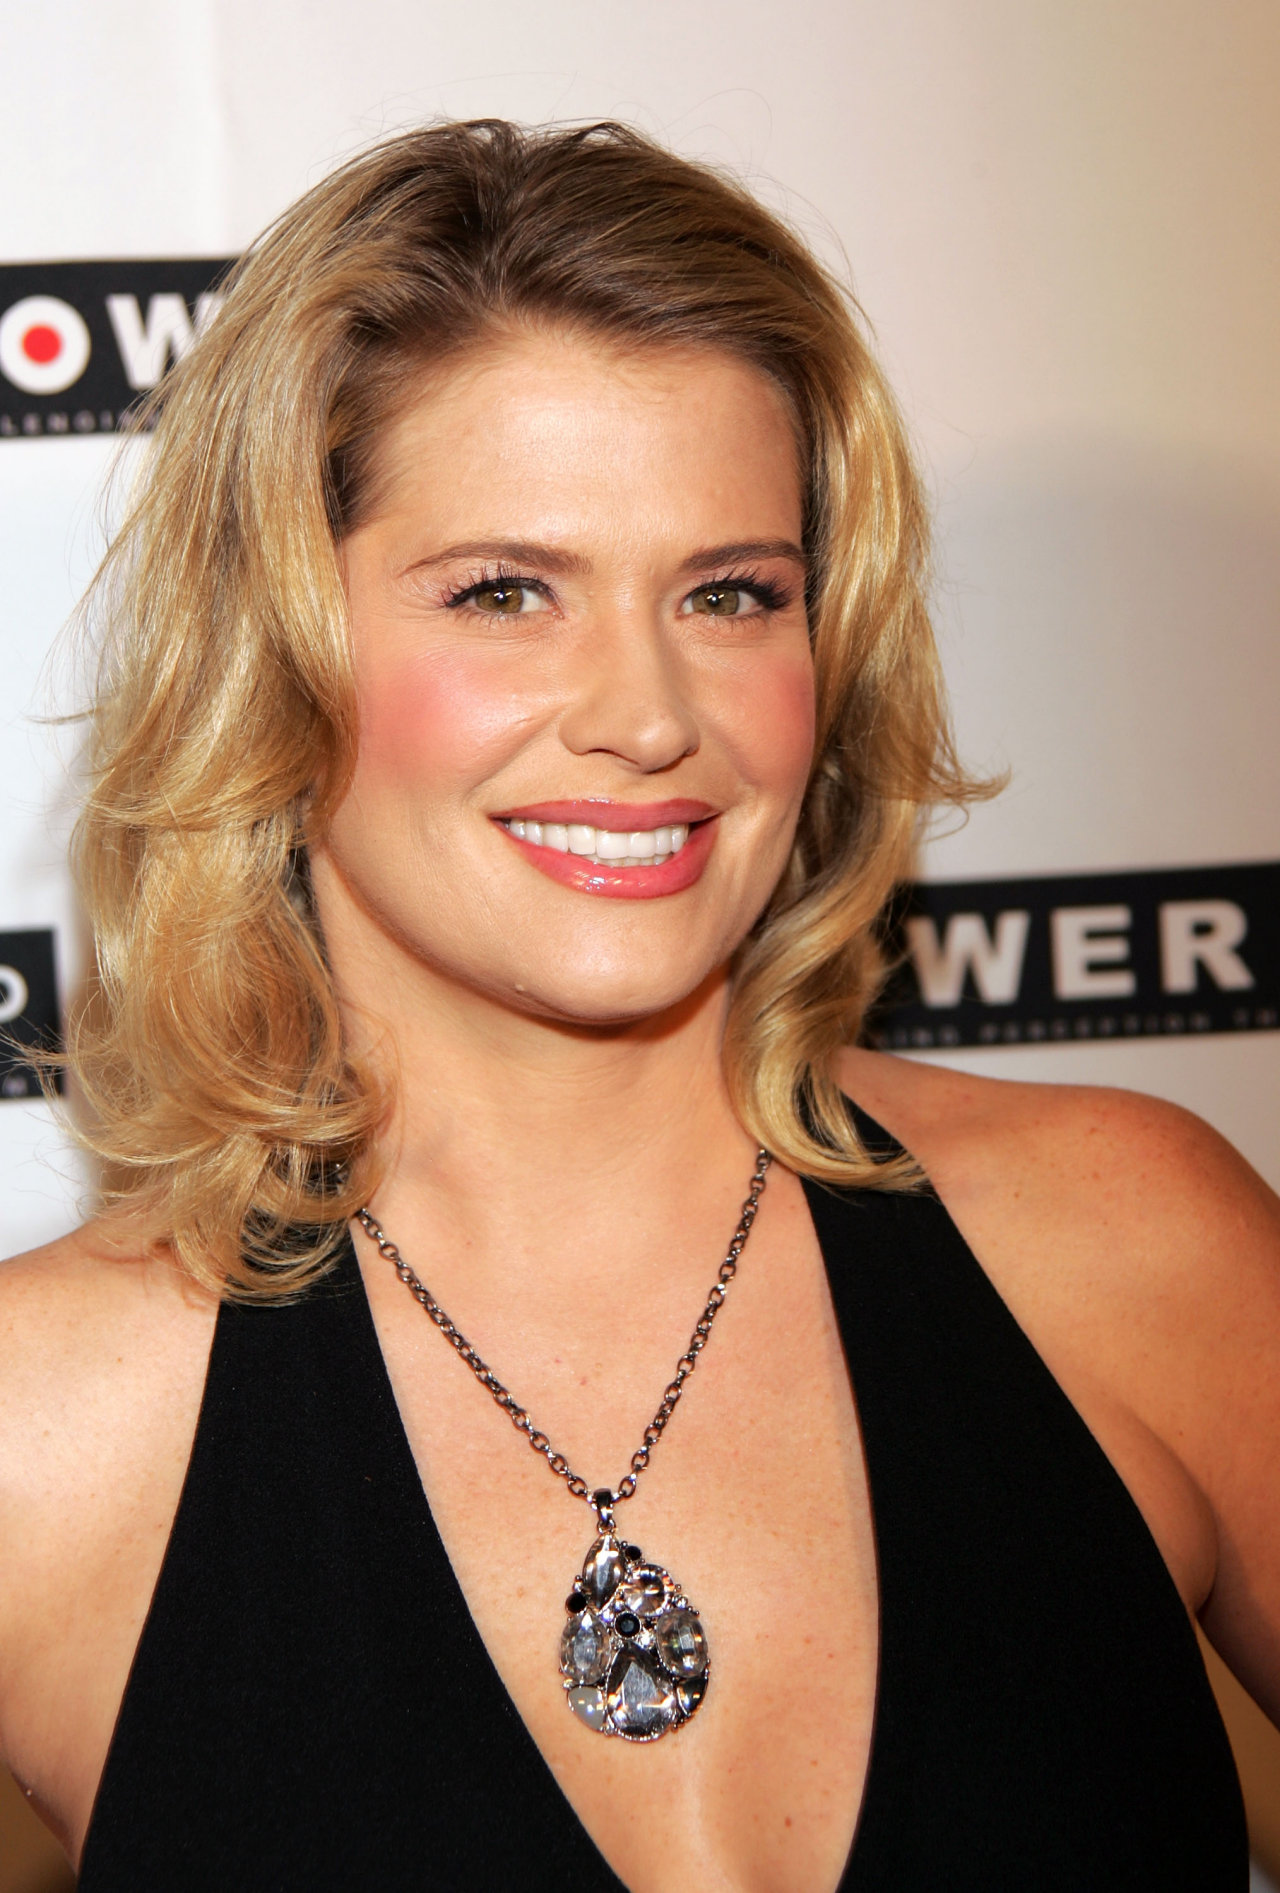 kristy swanson the chasekristy swanson 2016, kristy swanson, kristy swanson instagram, kristy swanson buffy the vampire slayer, kristy swanson the chase, kristy swanson photos, kristy swanson hot shots, kristy swanson young, kristy swanson imdb, kristy swanson movies